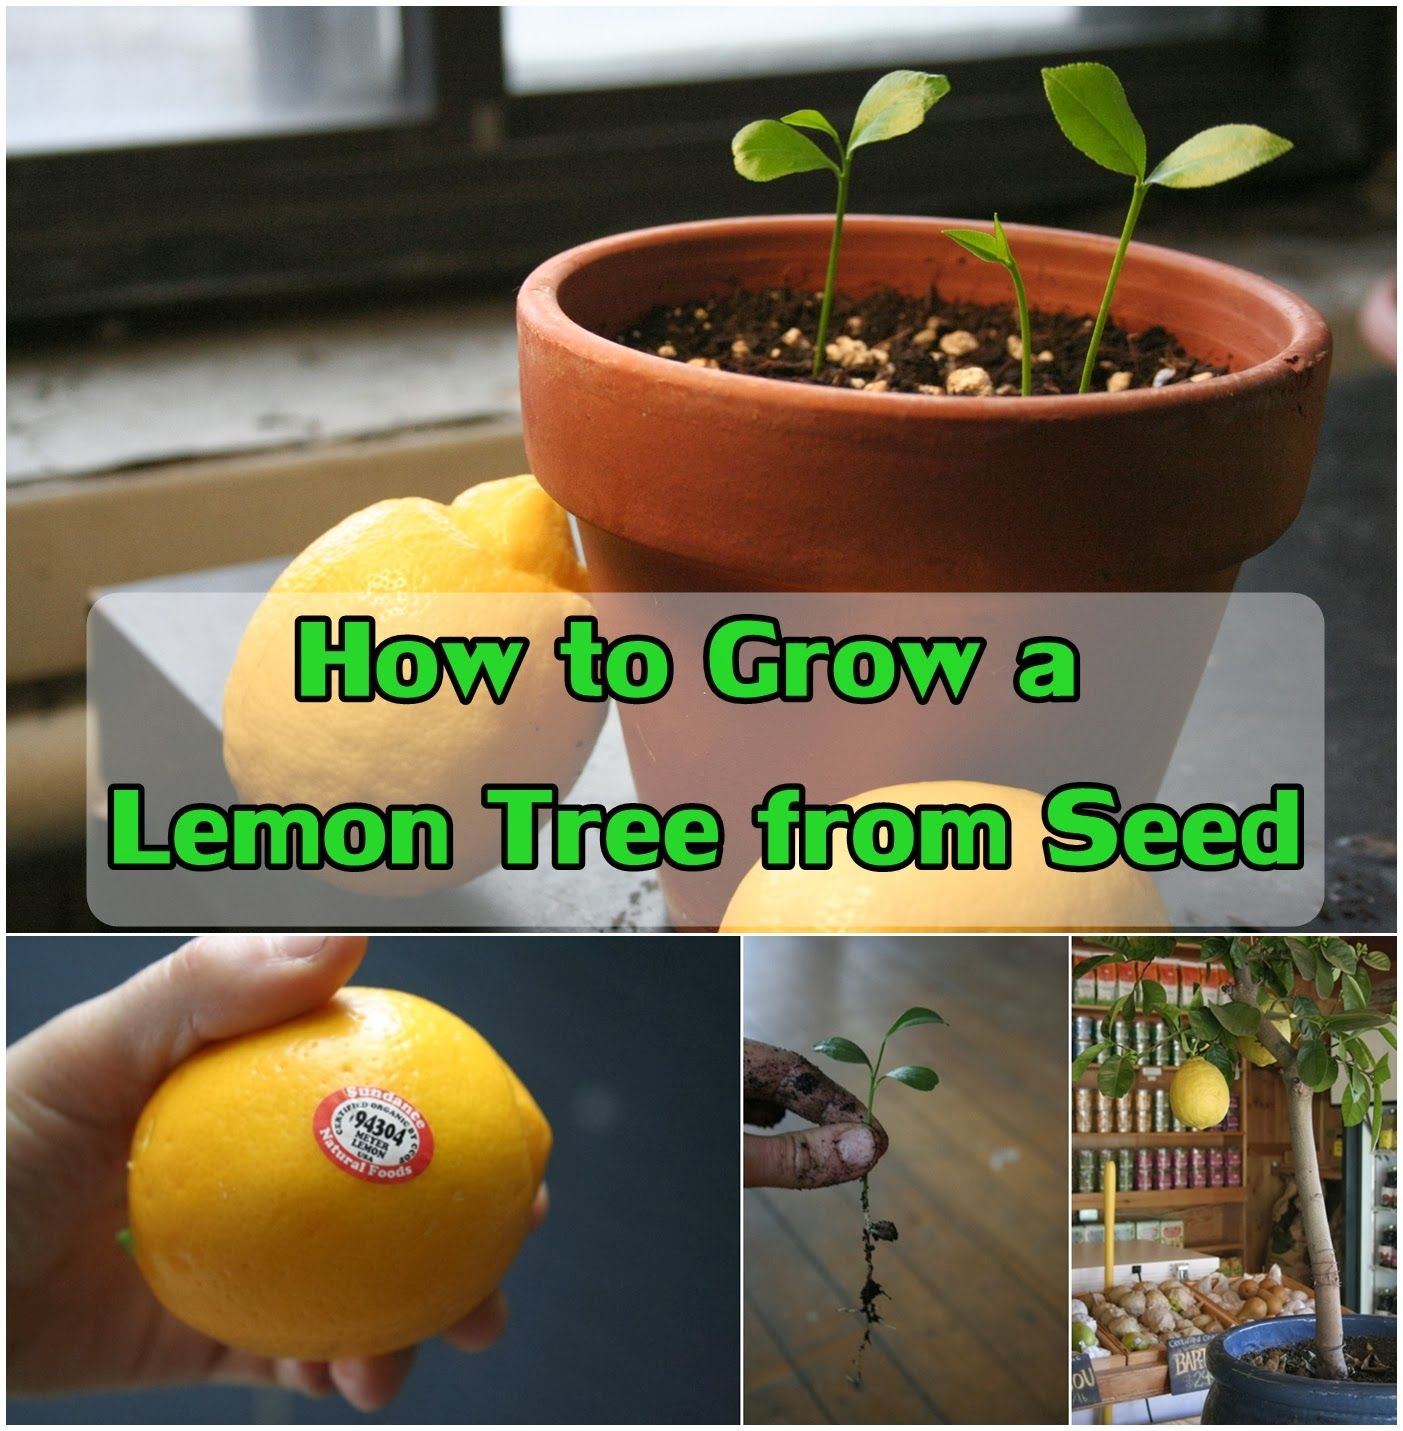 how to grow a lemon tree from seed faire pousser des plantes pinterest. Black Bedroom Furniture Sets. Home Design Ideas